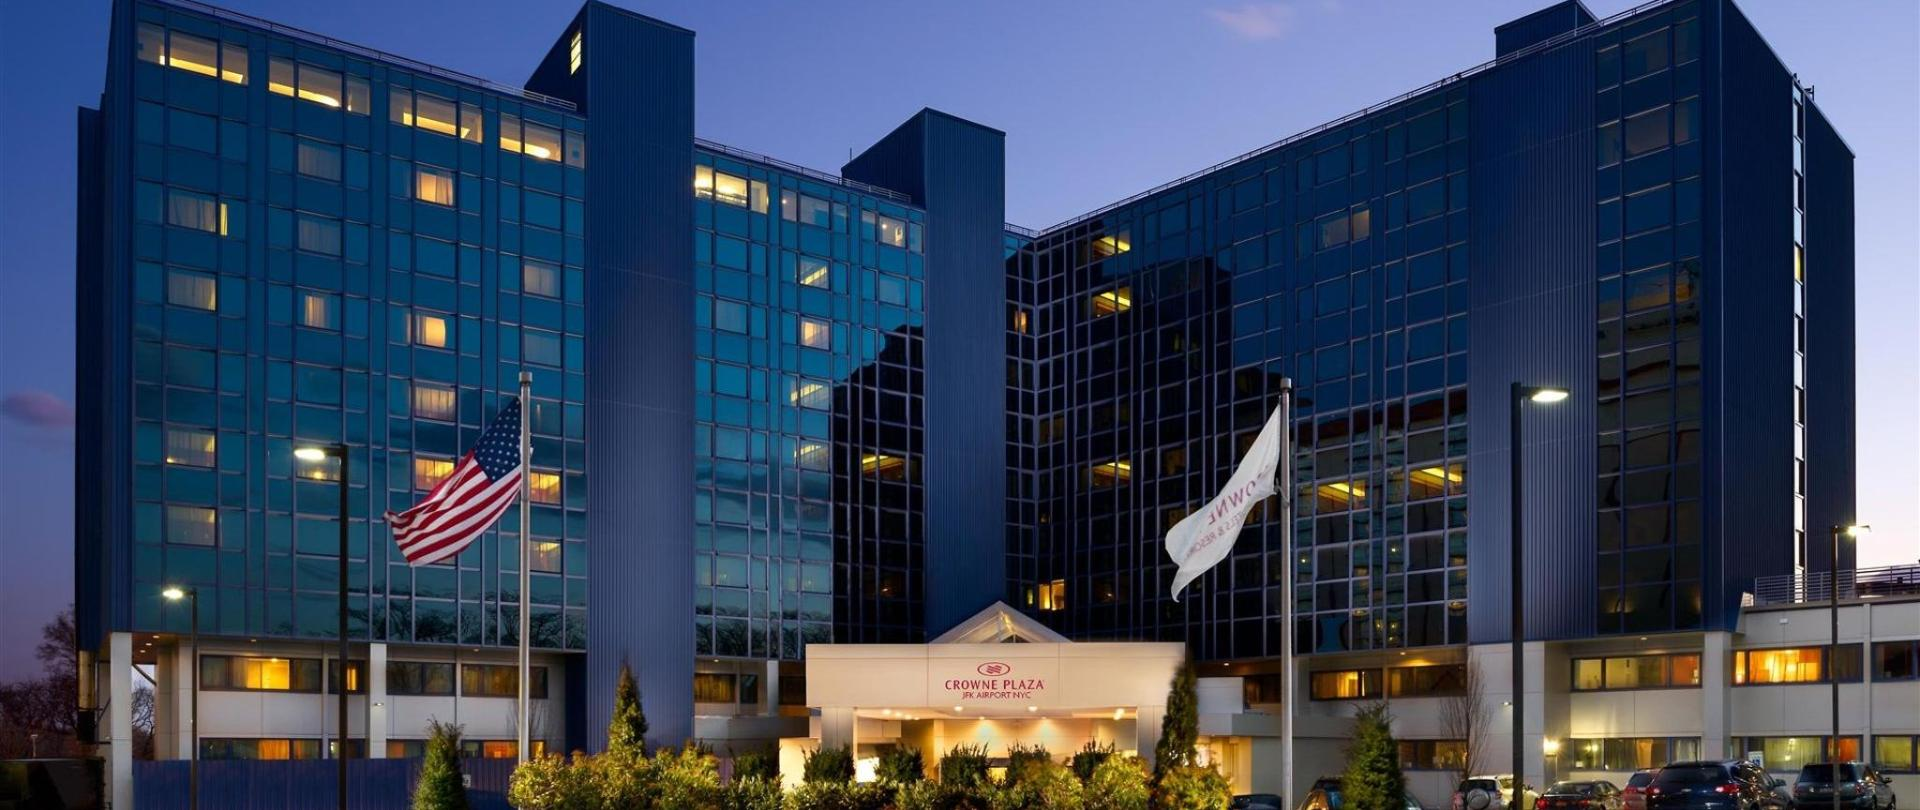 Crowne plaza jfk airport nyc hotel in jamaica ny for Hotels closest to jfk airport